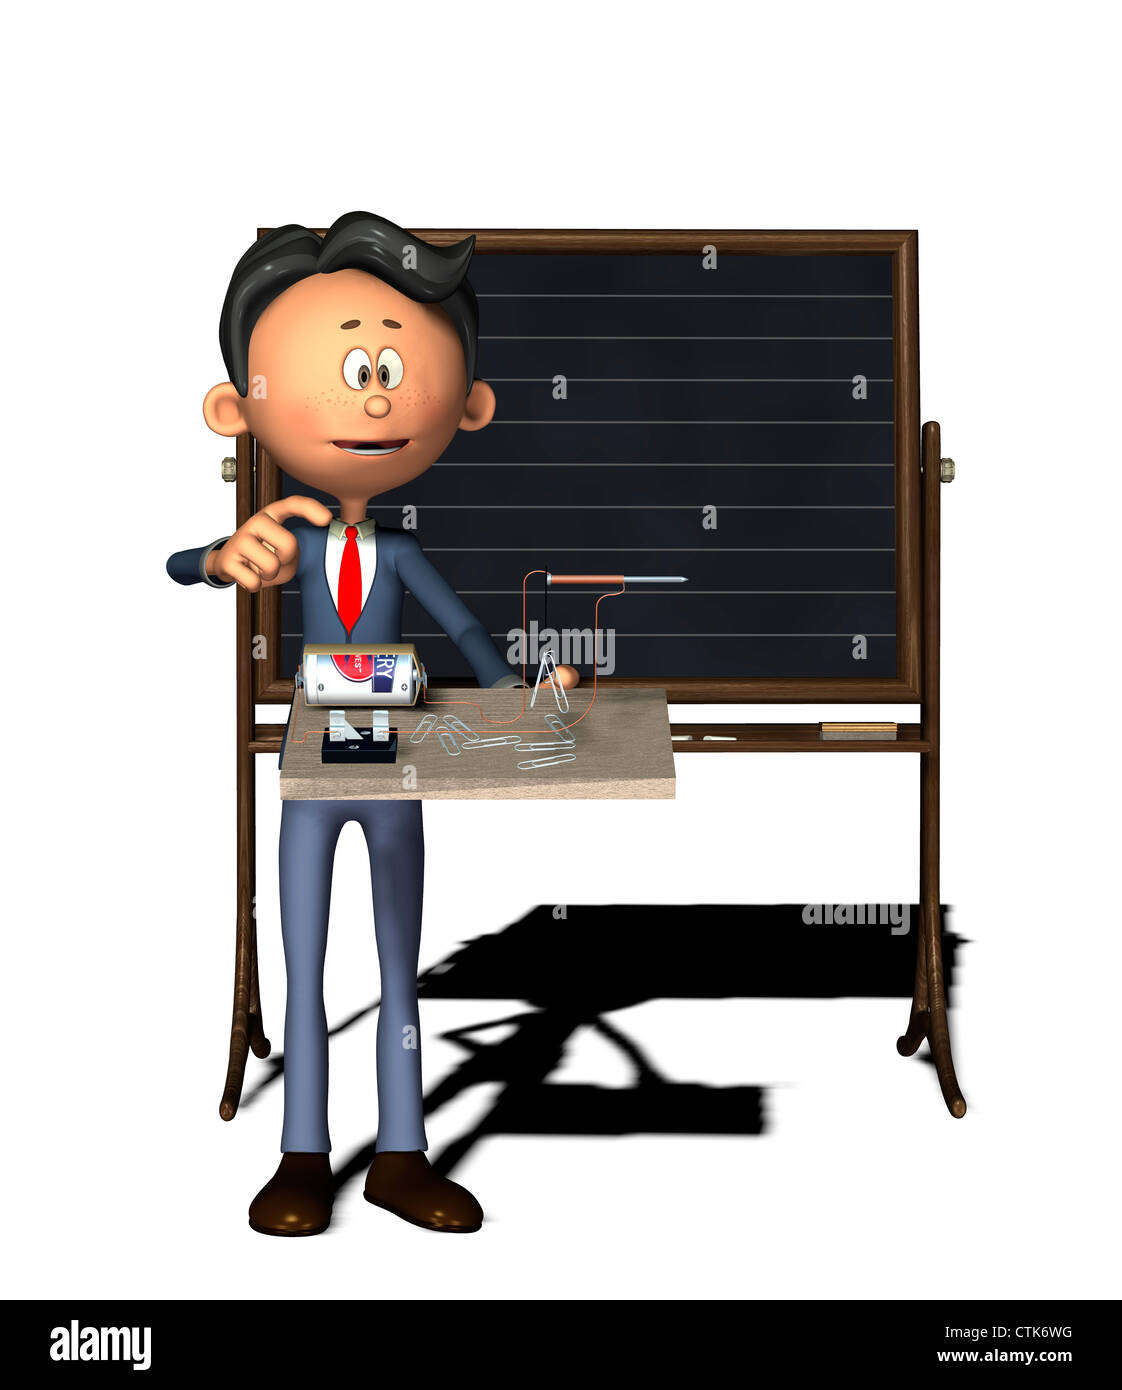 Cartoon-Figur Physiklehrer mit Elektronik-Experiment (Elektromagnet) Stockbild